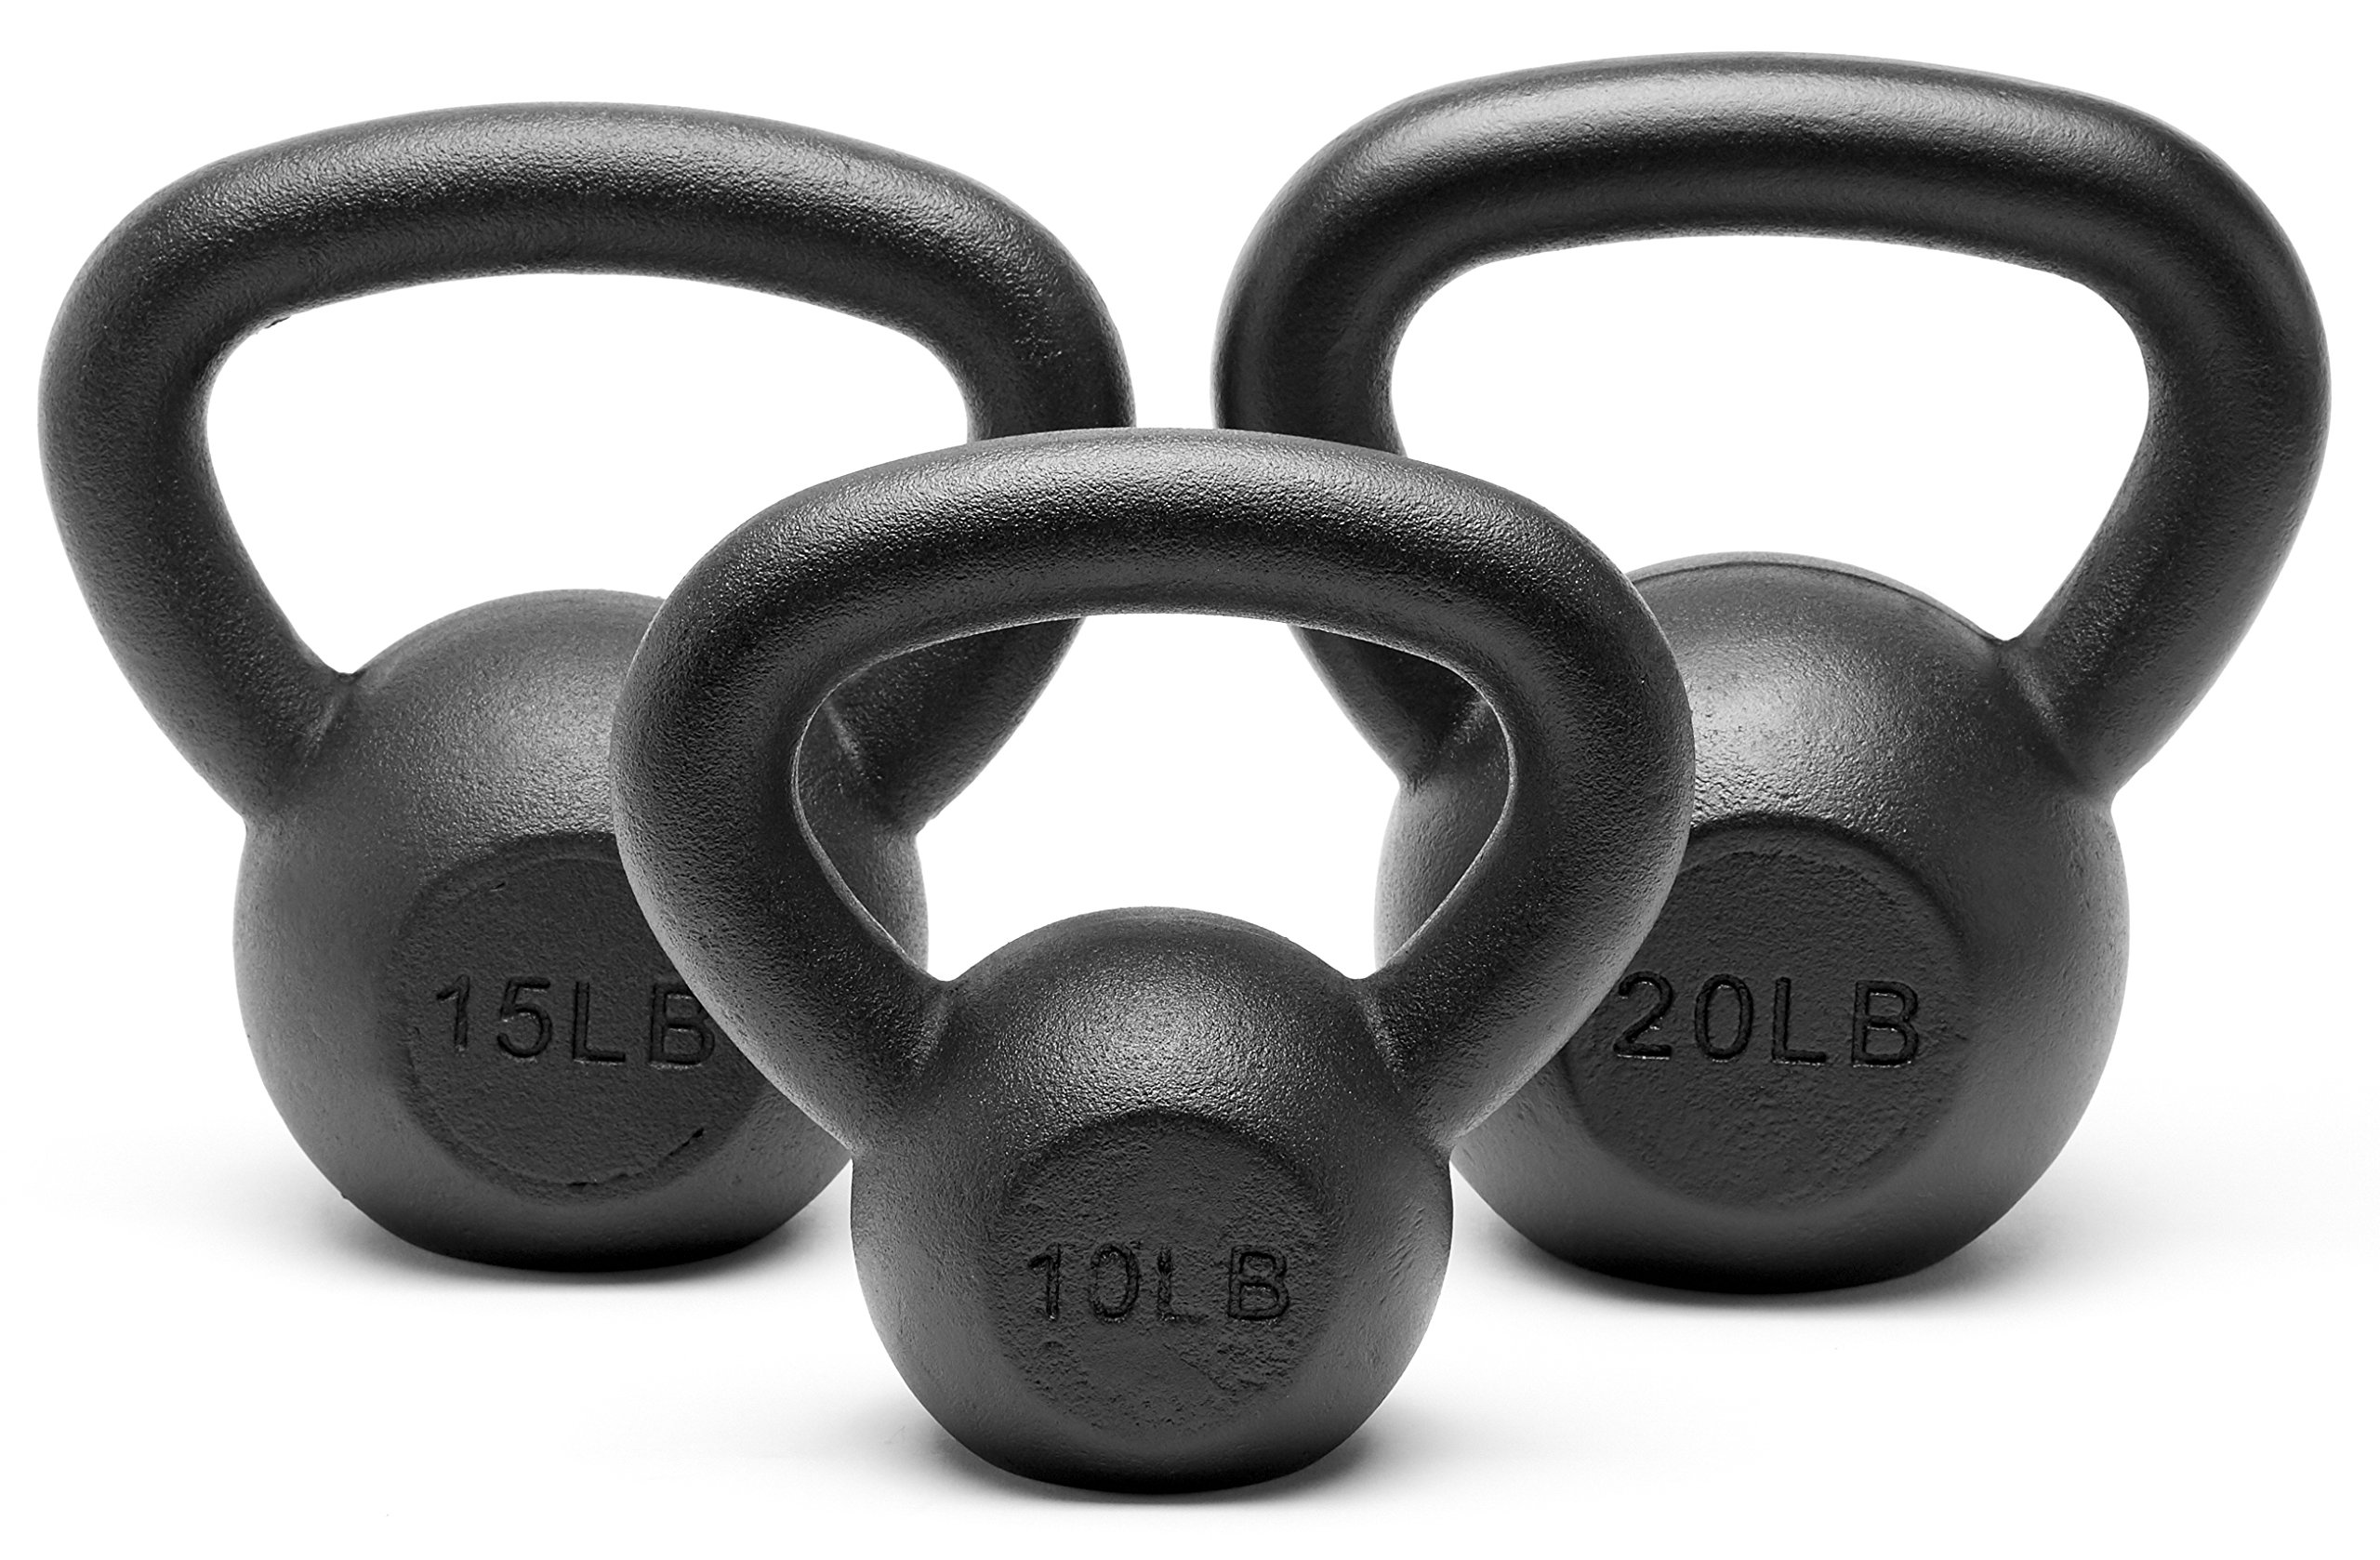 Unipack Powder Coated Solid Cast Iron Kettlebell Weights Set- (10+15+20 lbs)